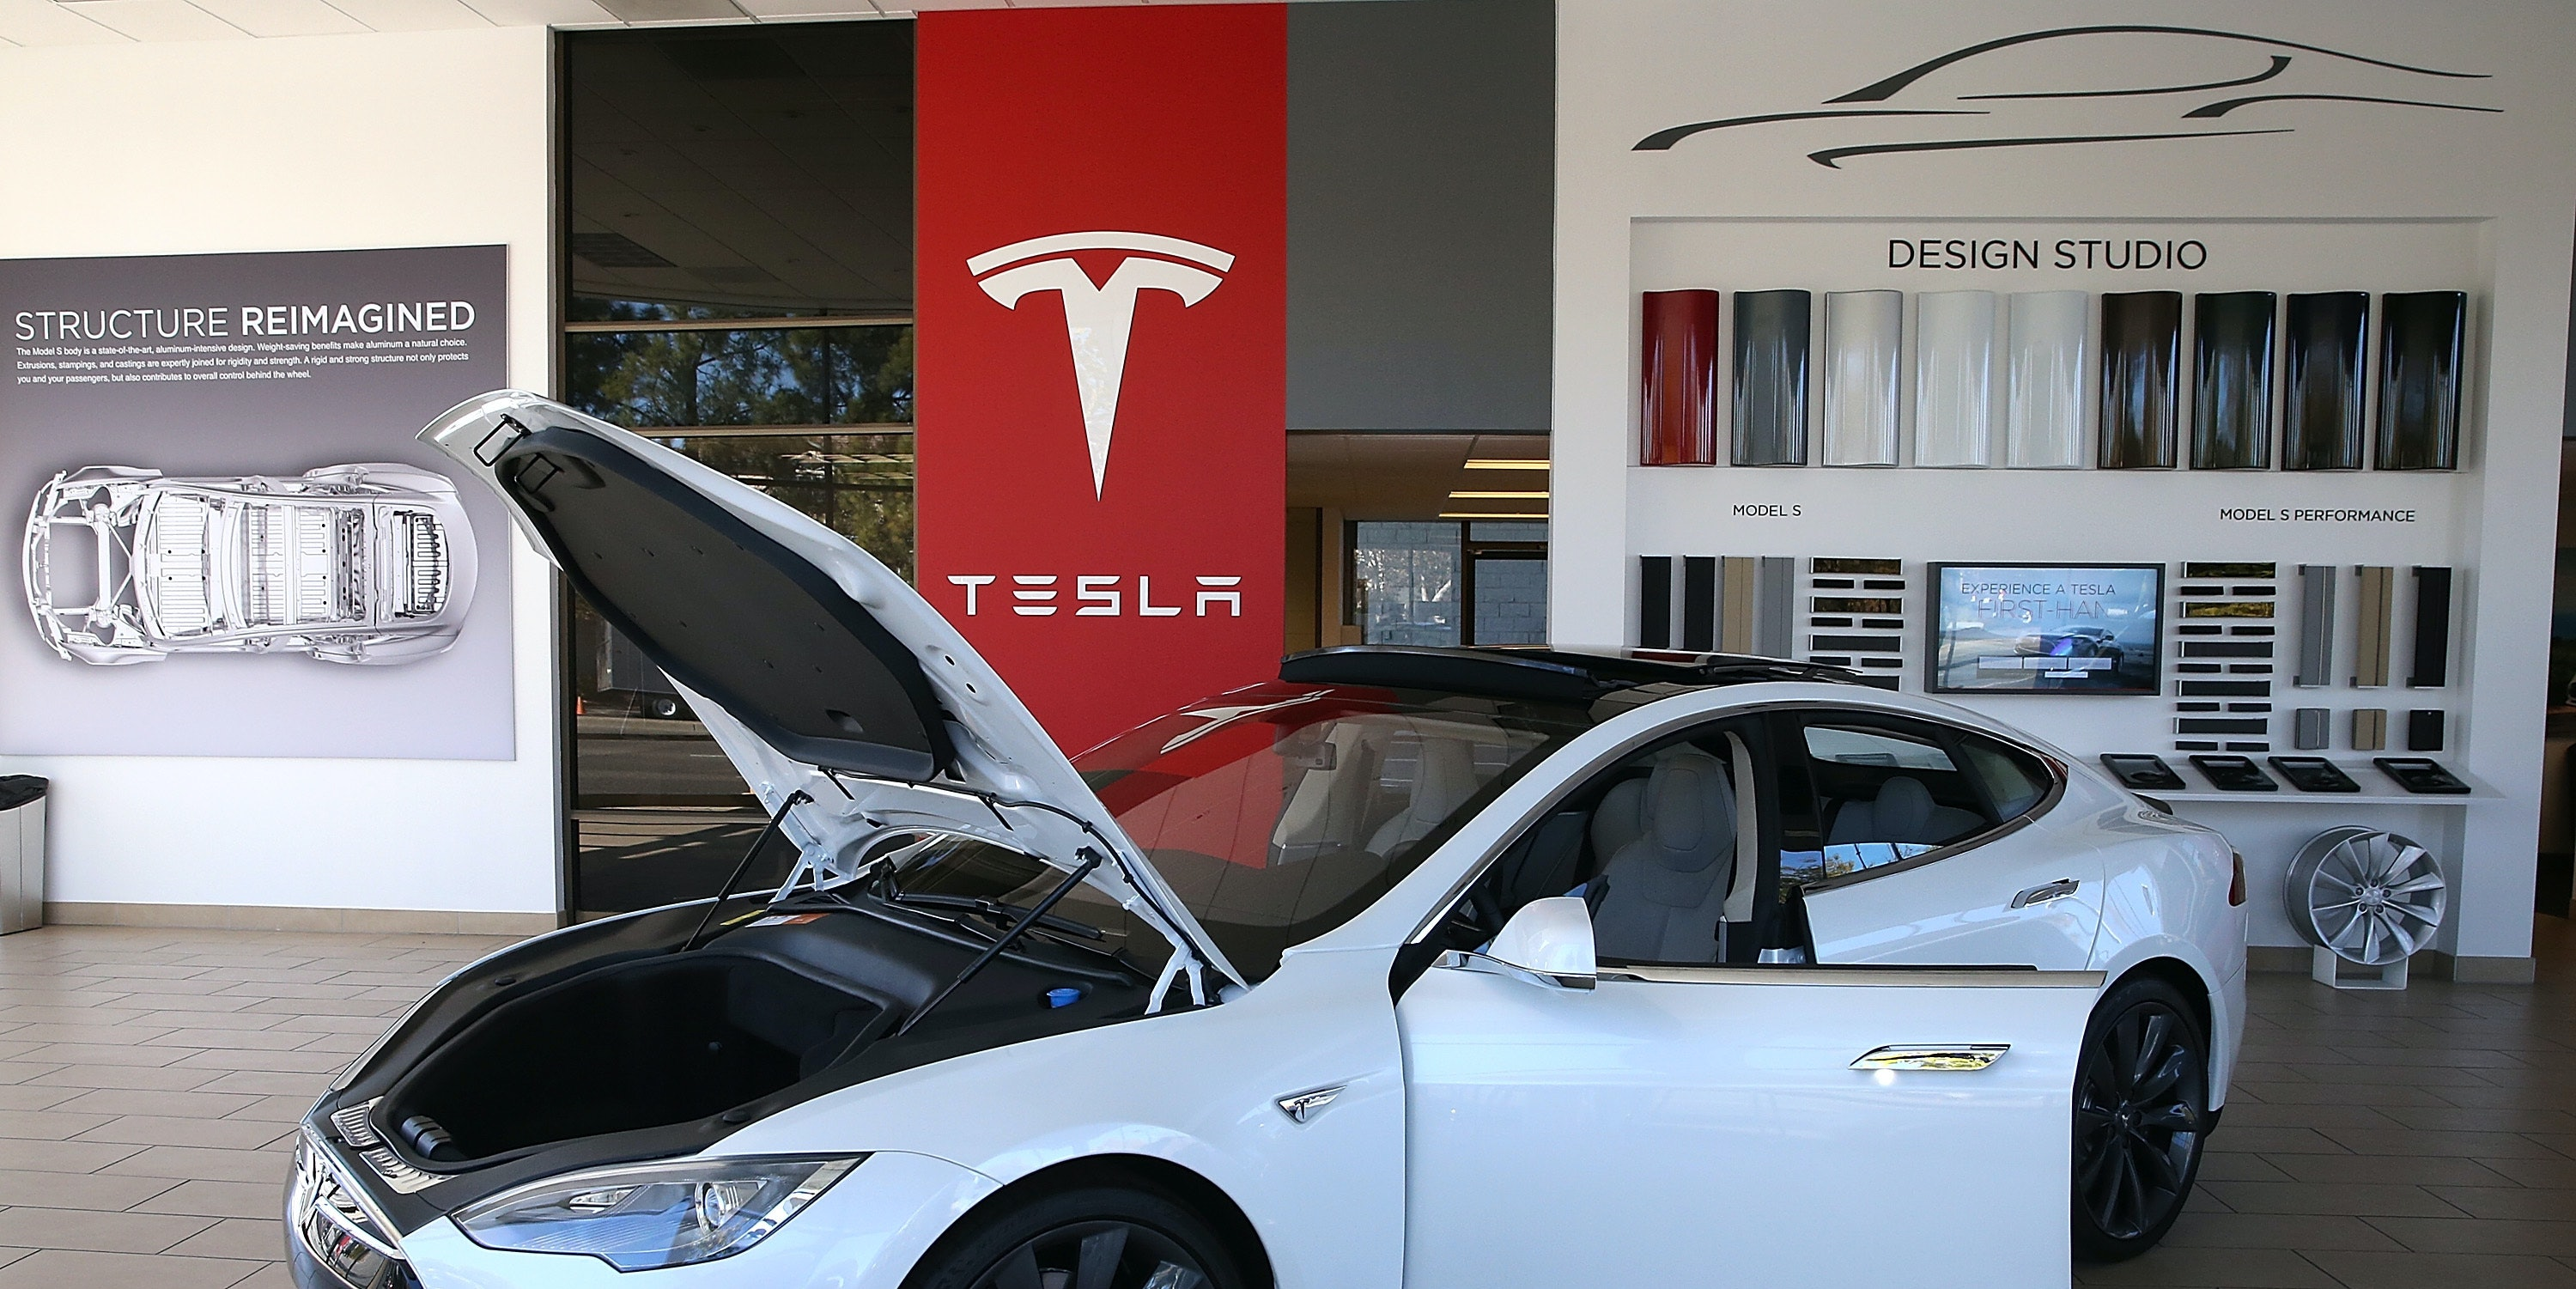 PALO ALTO, CA - NOVEMBER 05:  A Tesla Model S car is displayed at a Tesla showroom on November 5, 2013 in Palo Alto, California. Tesla will report third quarter earnings today after the closing bell.  (Photo by Justin Sullivan/Getty Images)